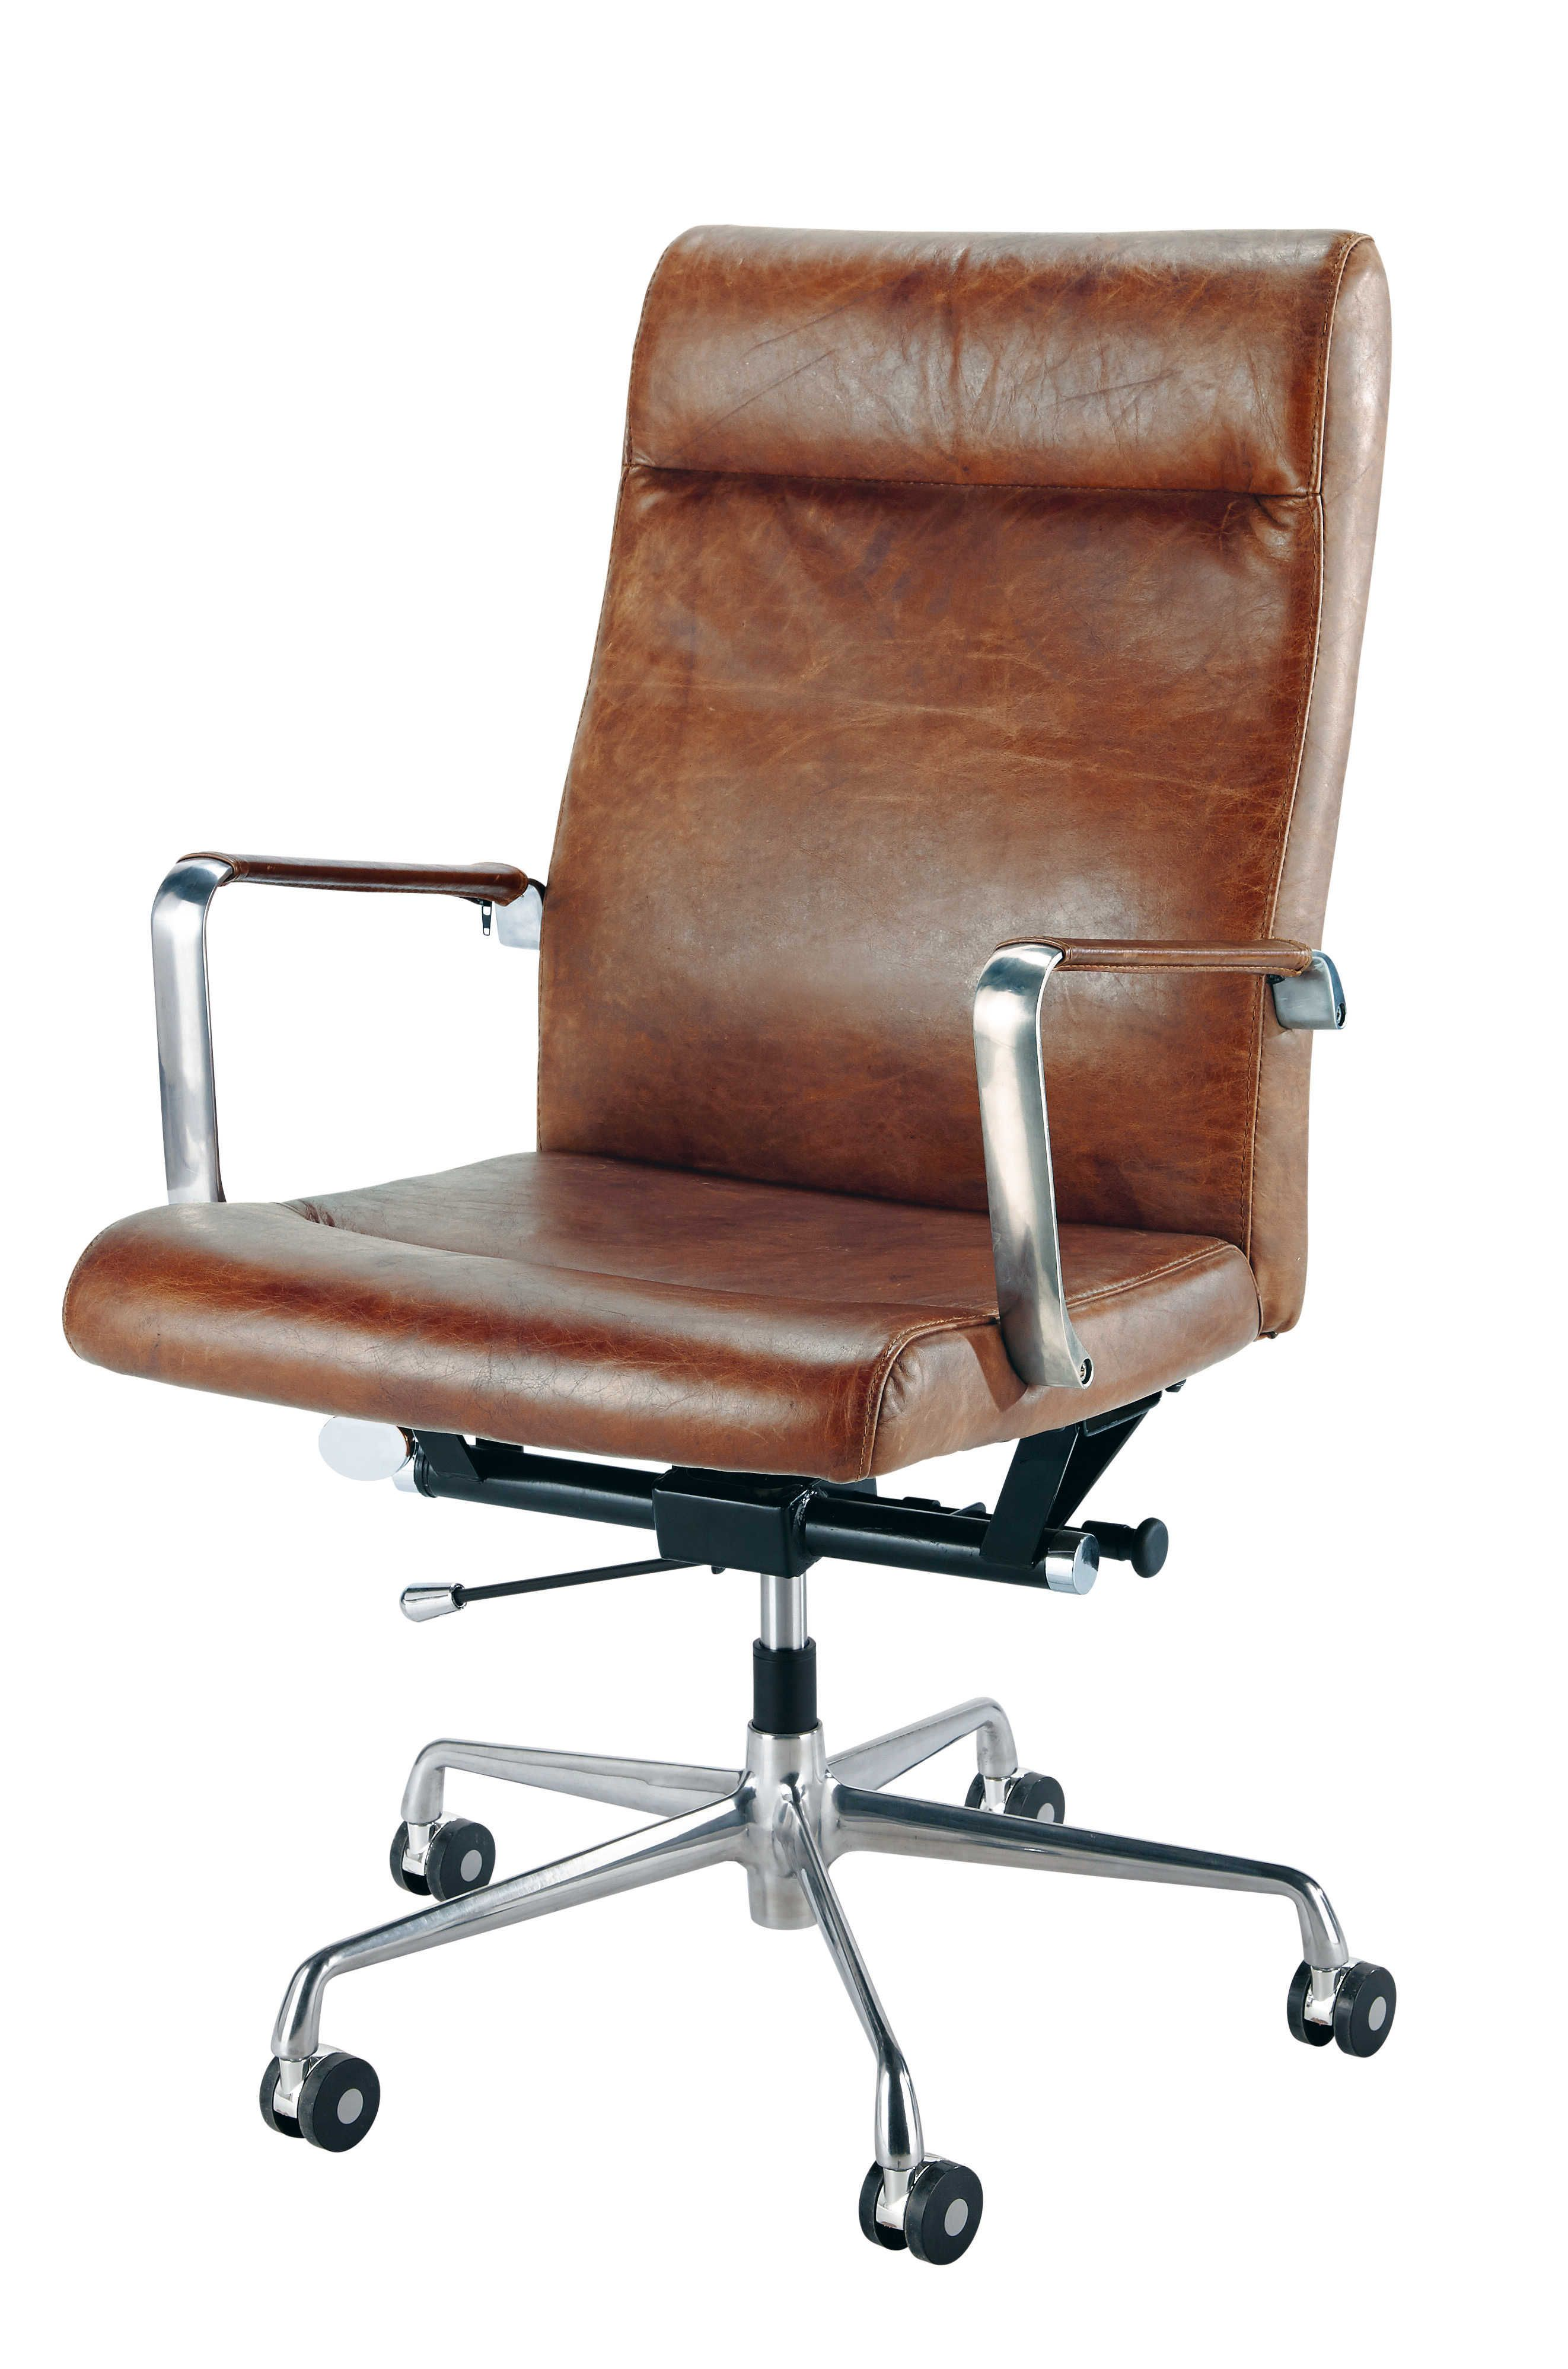 Brown leather and metal office chair on wheels in 2019